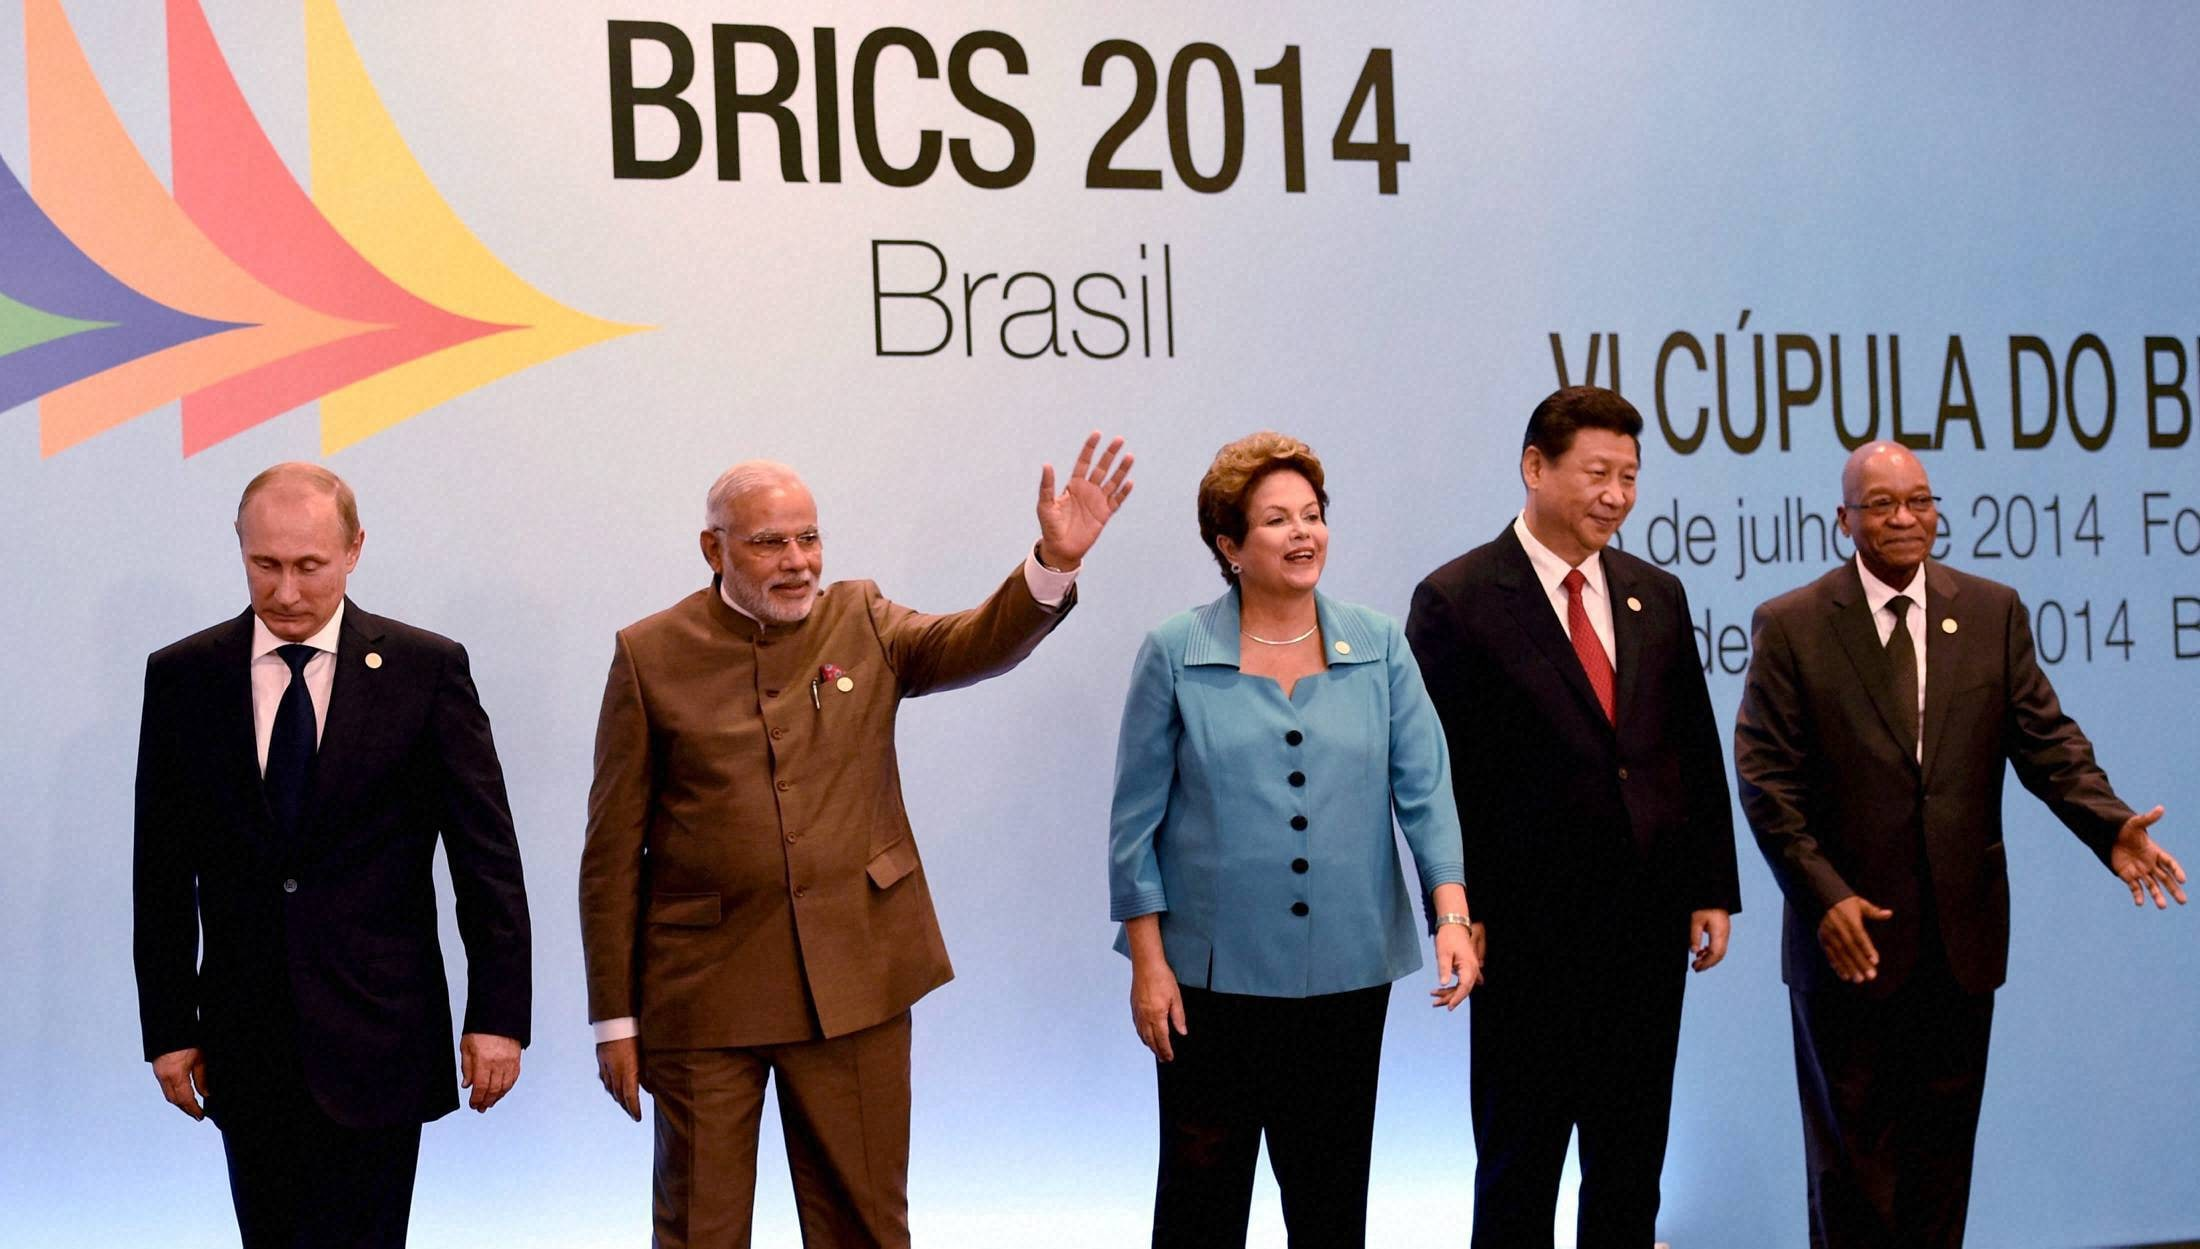 http://bsmedia.business-standard.com/_media/bs/img/photo-gallery/general/brics-summit-in-ceara-events-centre-fortaleza-in-brazil/full/prime-minister-narendra-modi-official-photo-chinese-president-xi-jinping-russian-president-vladimir-putin-brazil-s-president-dilma-rousseff-and-south-african-president-jacob-zuma-at-brics-summit-in-ceara-events-14054942505579.jpg